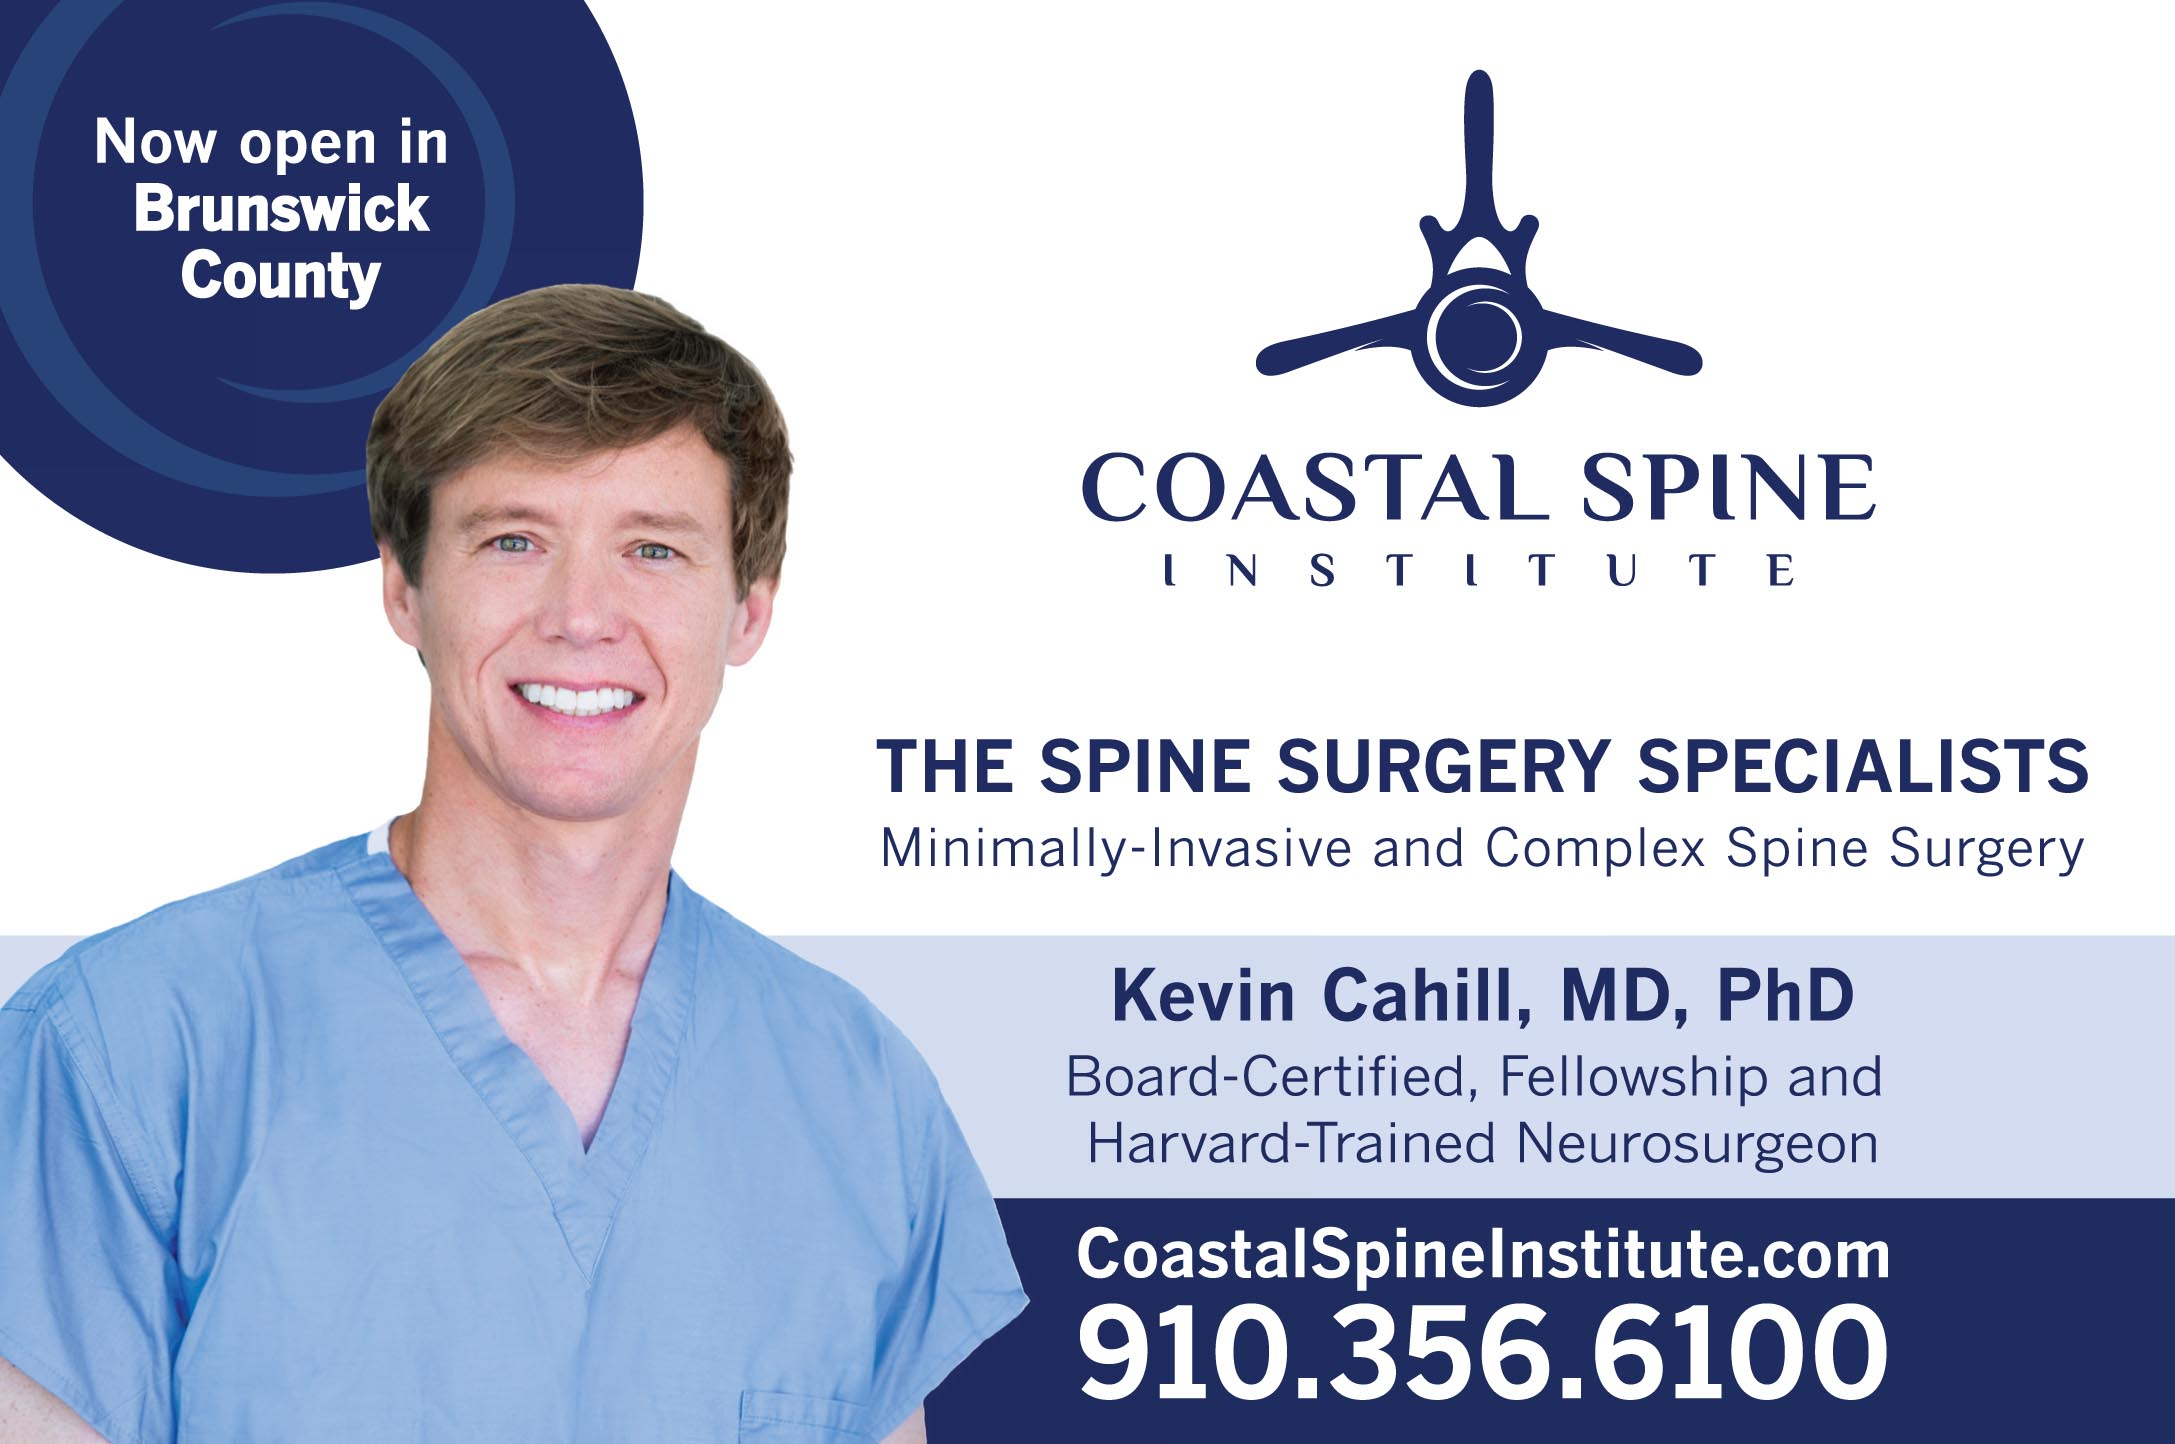 Coastal Spine Institute, PC – The Spine Surgery Specialists